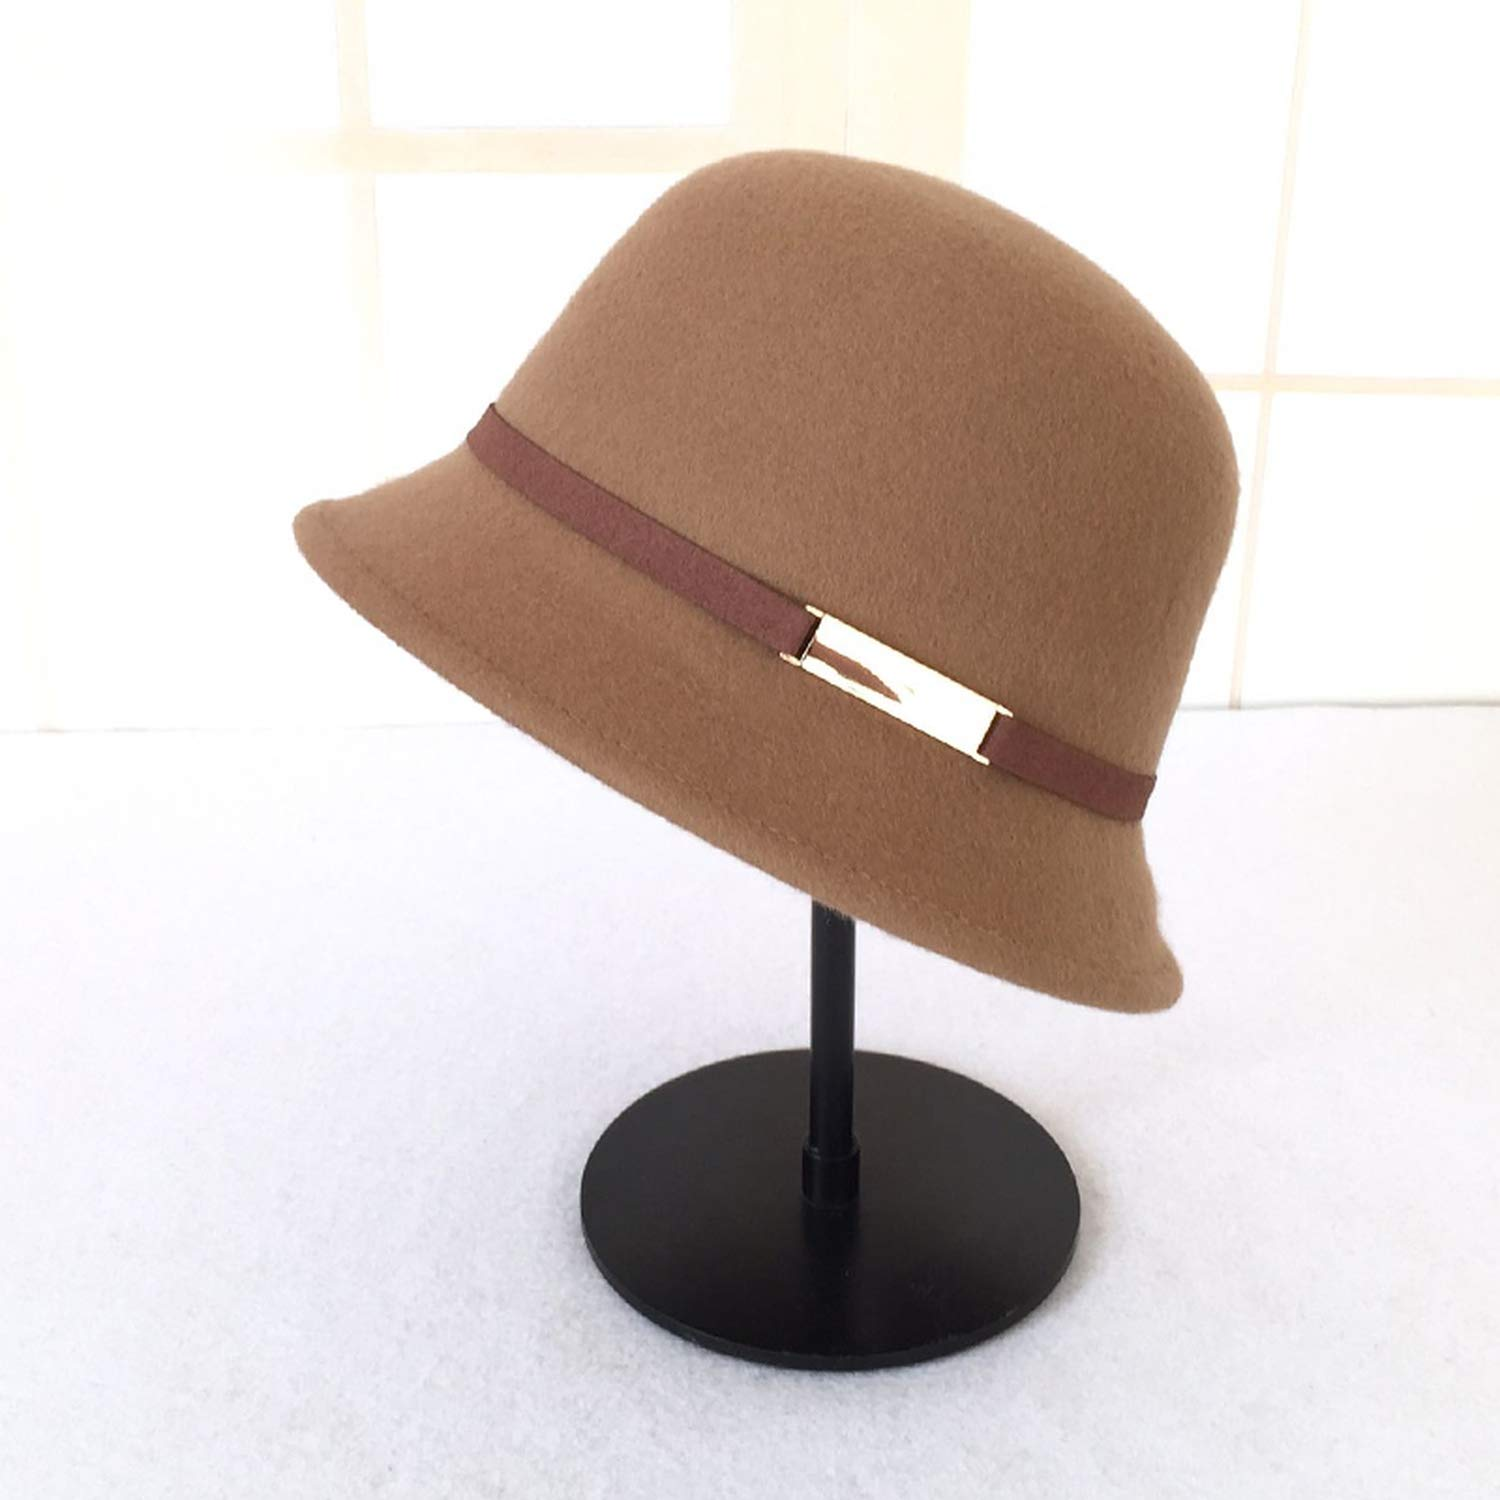 Rzxkad Lady Fedoras Wool Hat Female Winter Warm Dome Cap Students Leisure Woolen Fresh Hats Fedoras Cap New Year Gift